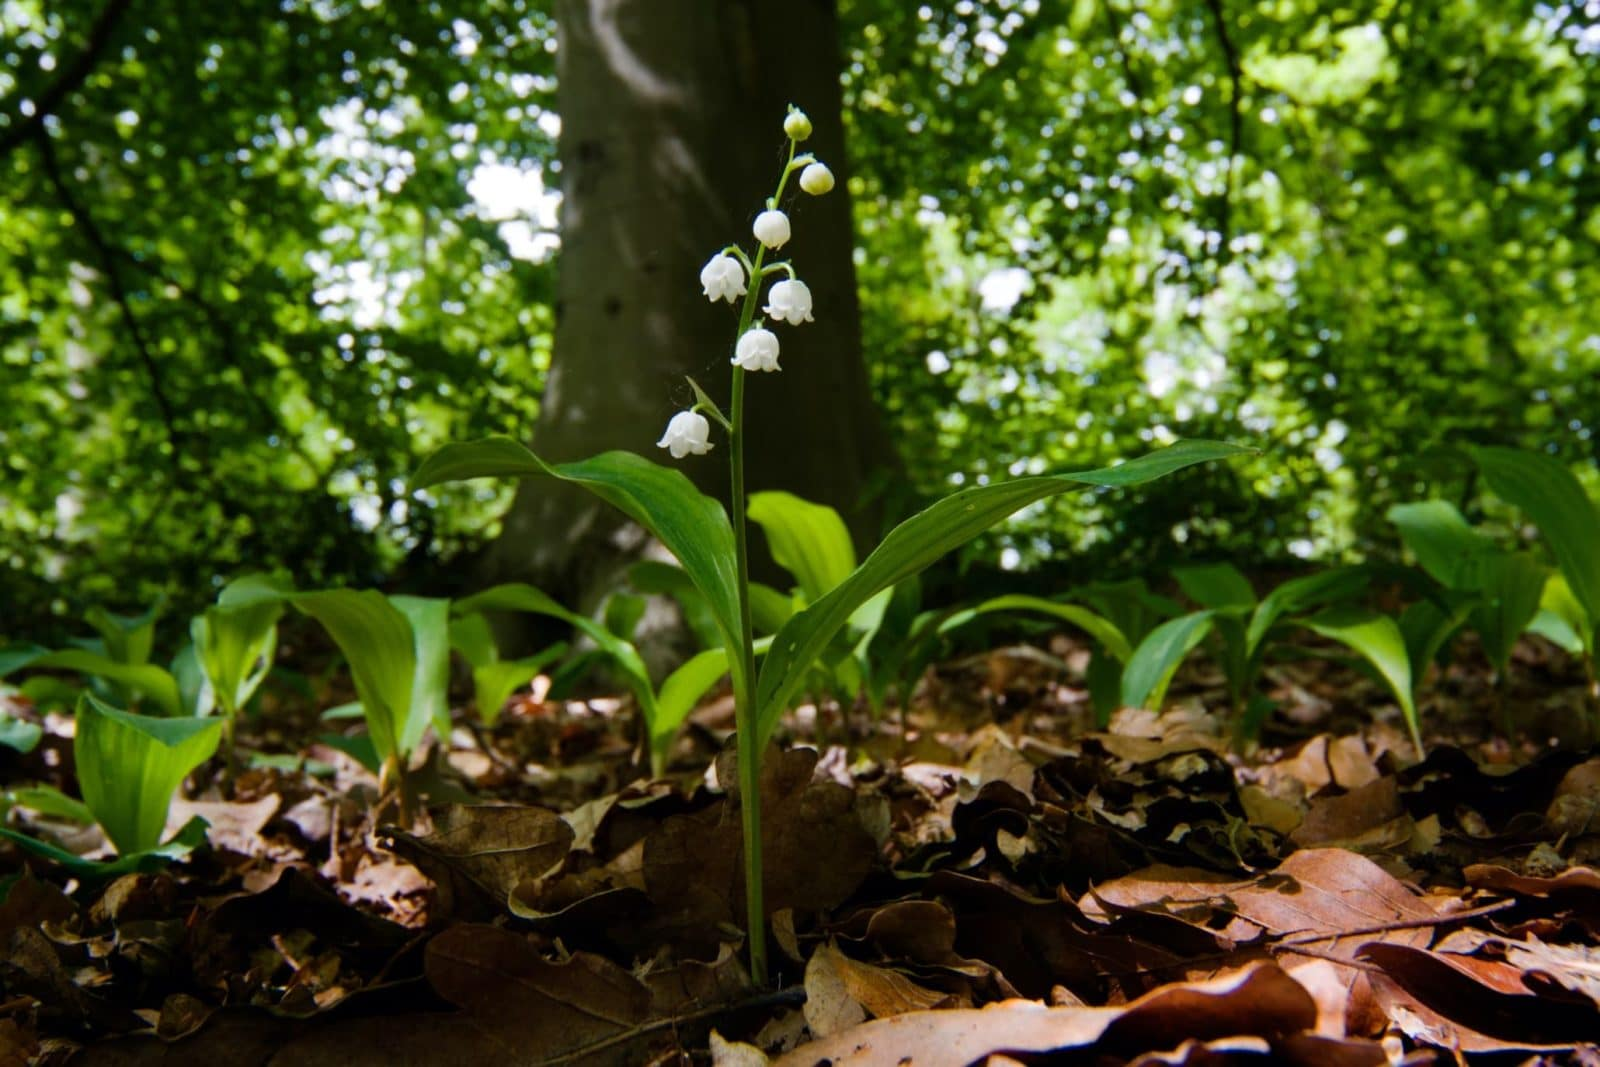 lily of the valley growing under the shade of a tree